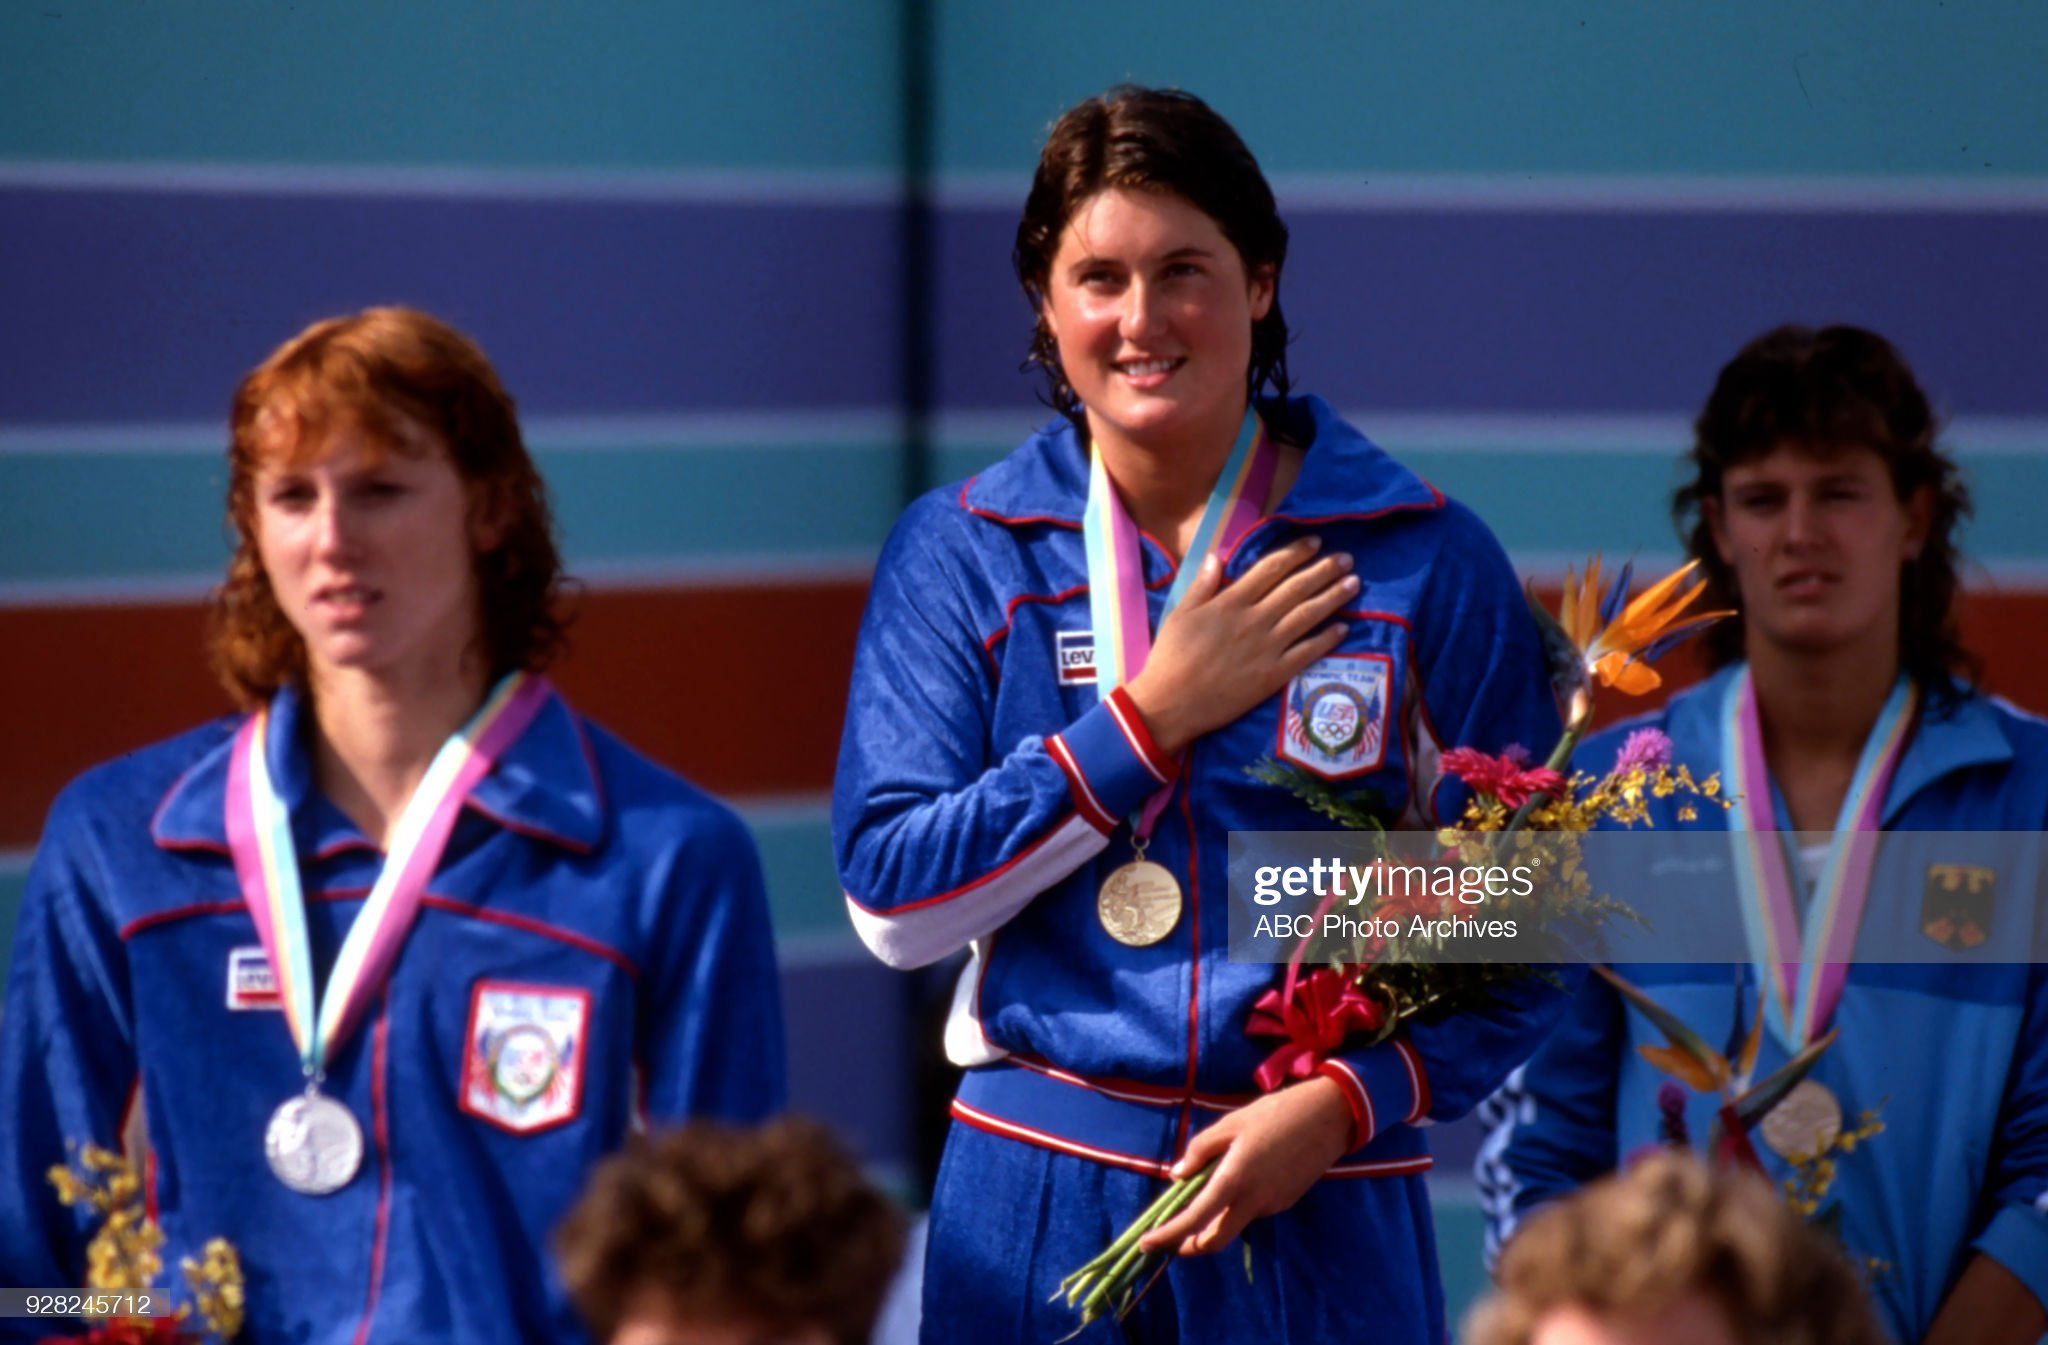 Women's Swimming 100 Metre Butterfly Medal Ceremony At The 1984 Summer Olympics : Fotografía de noticias